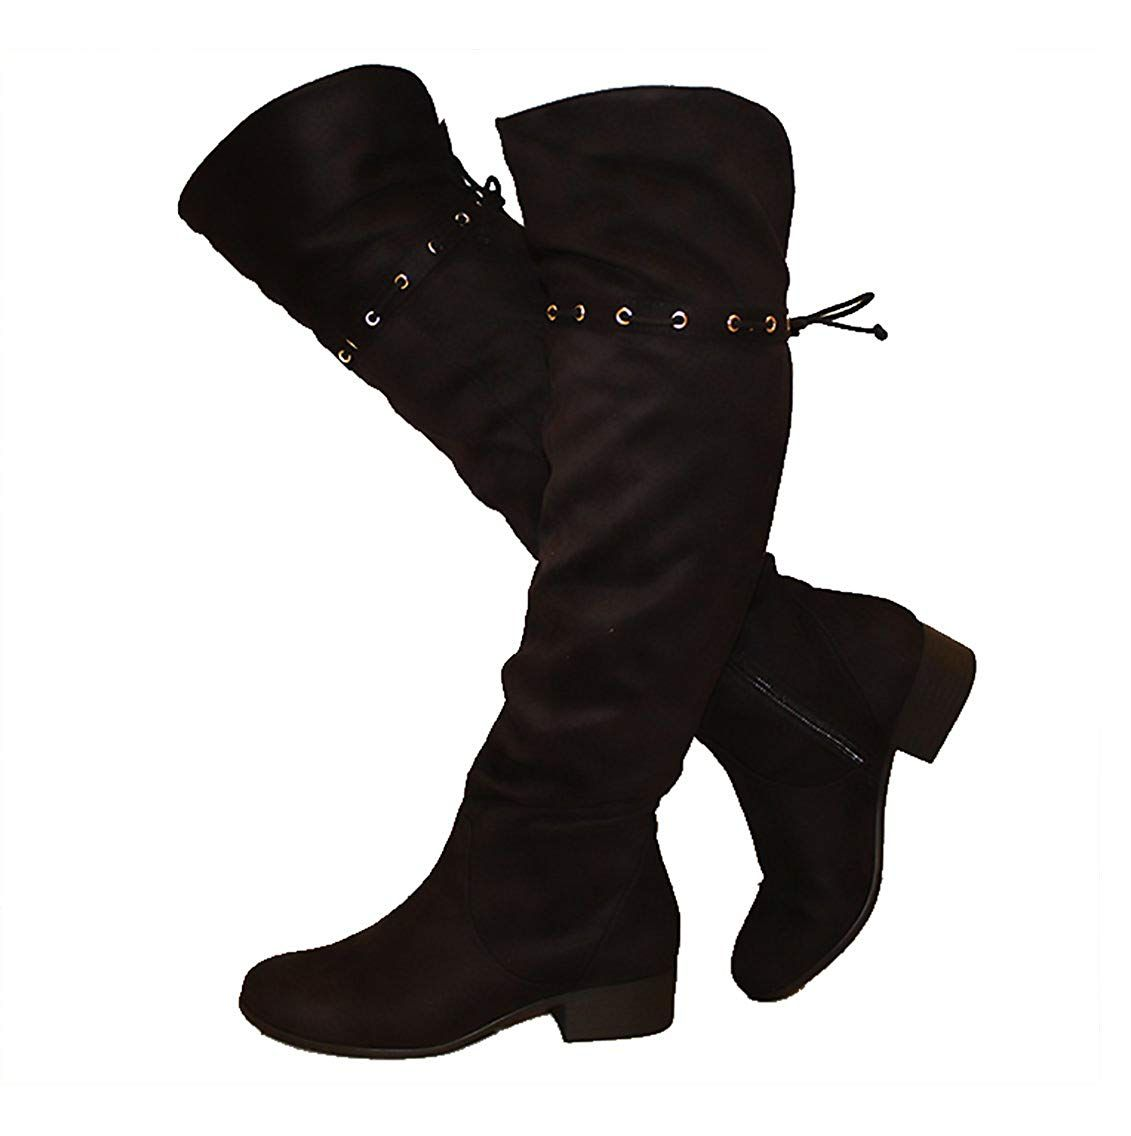 City Classified Knee Knee Classified Slouchy Western InspiROT Stiefel w INTERLACING ... c4f5f9